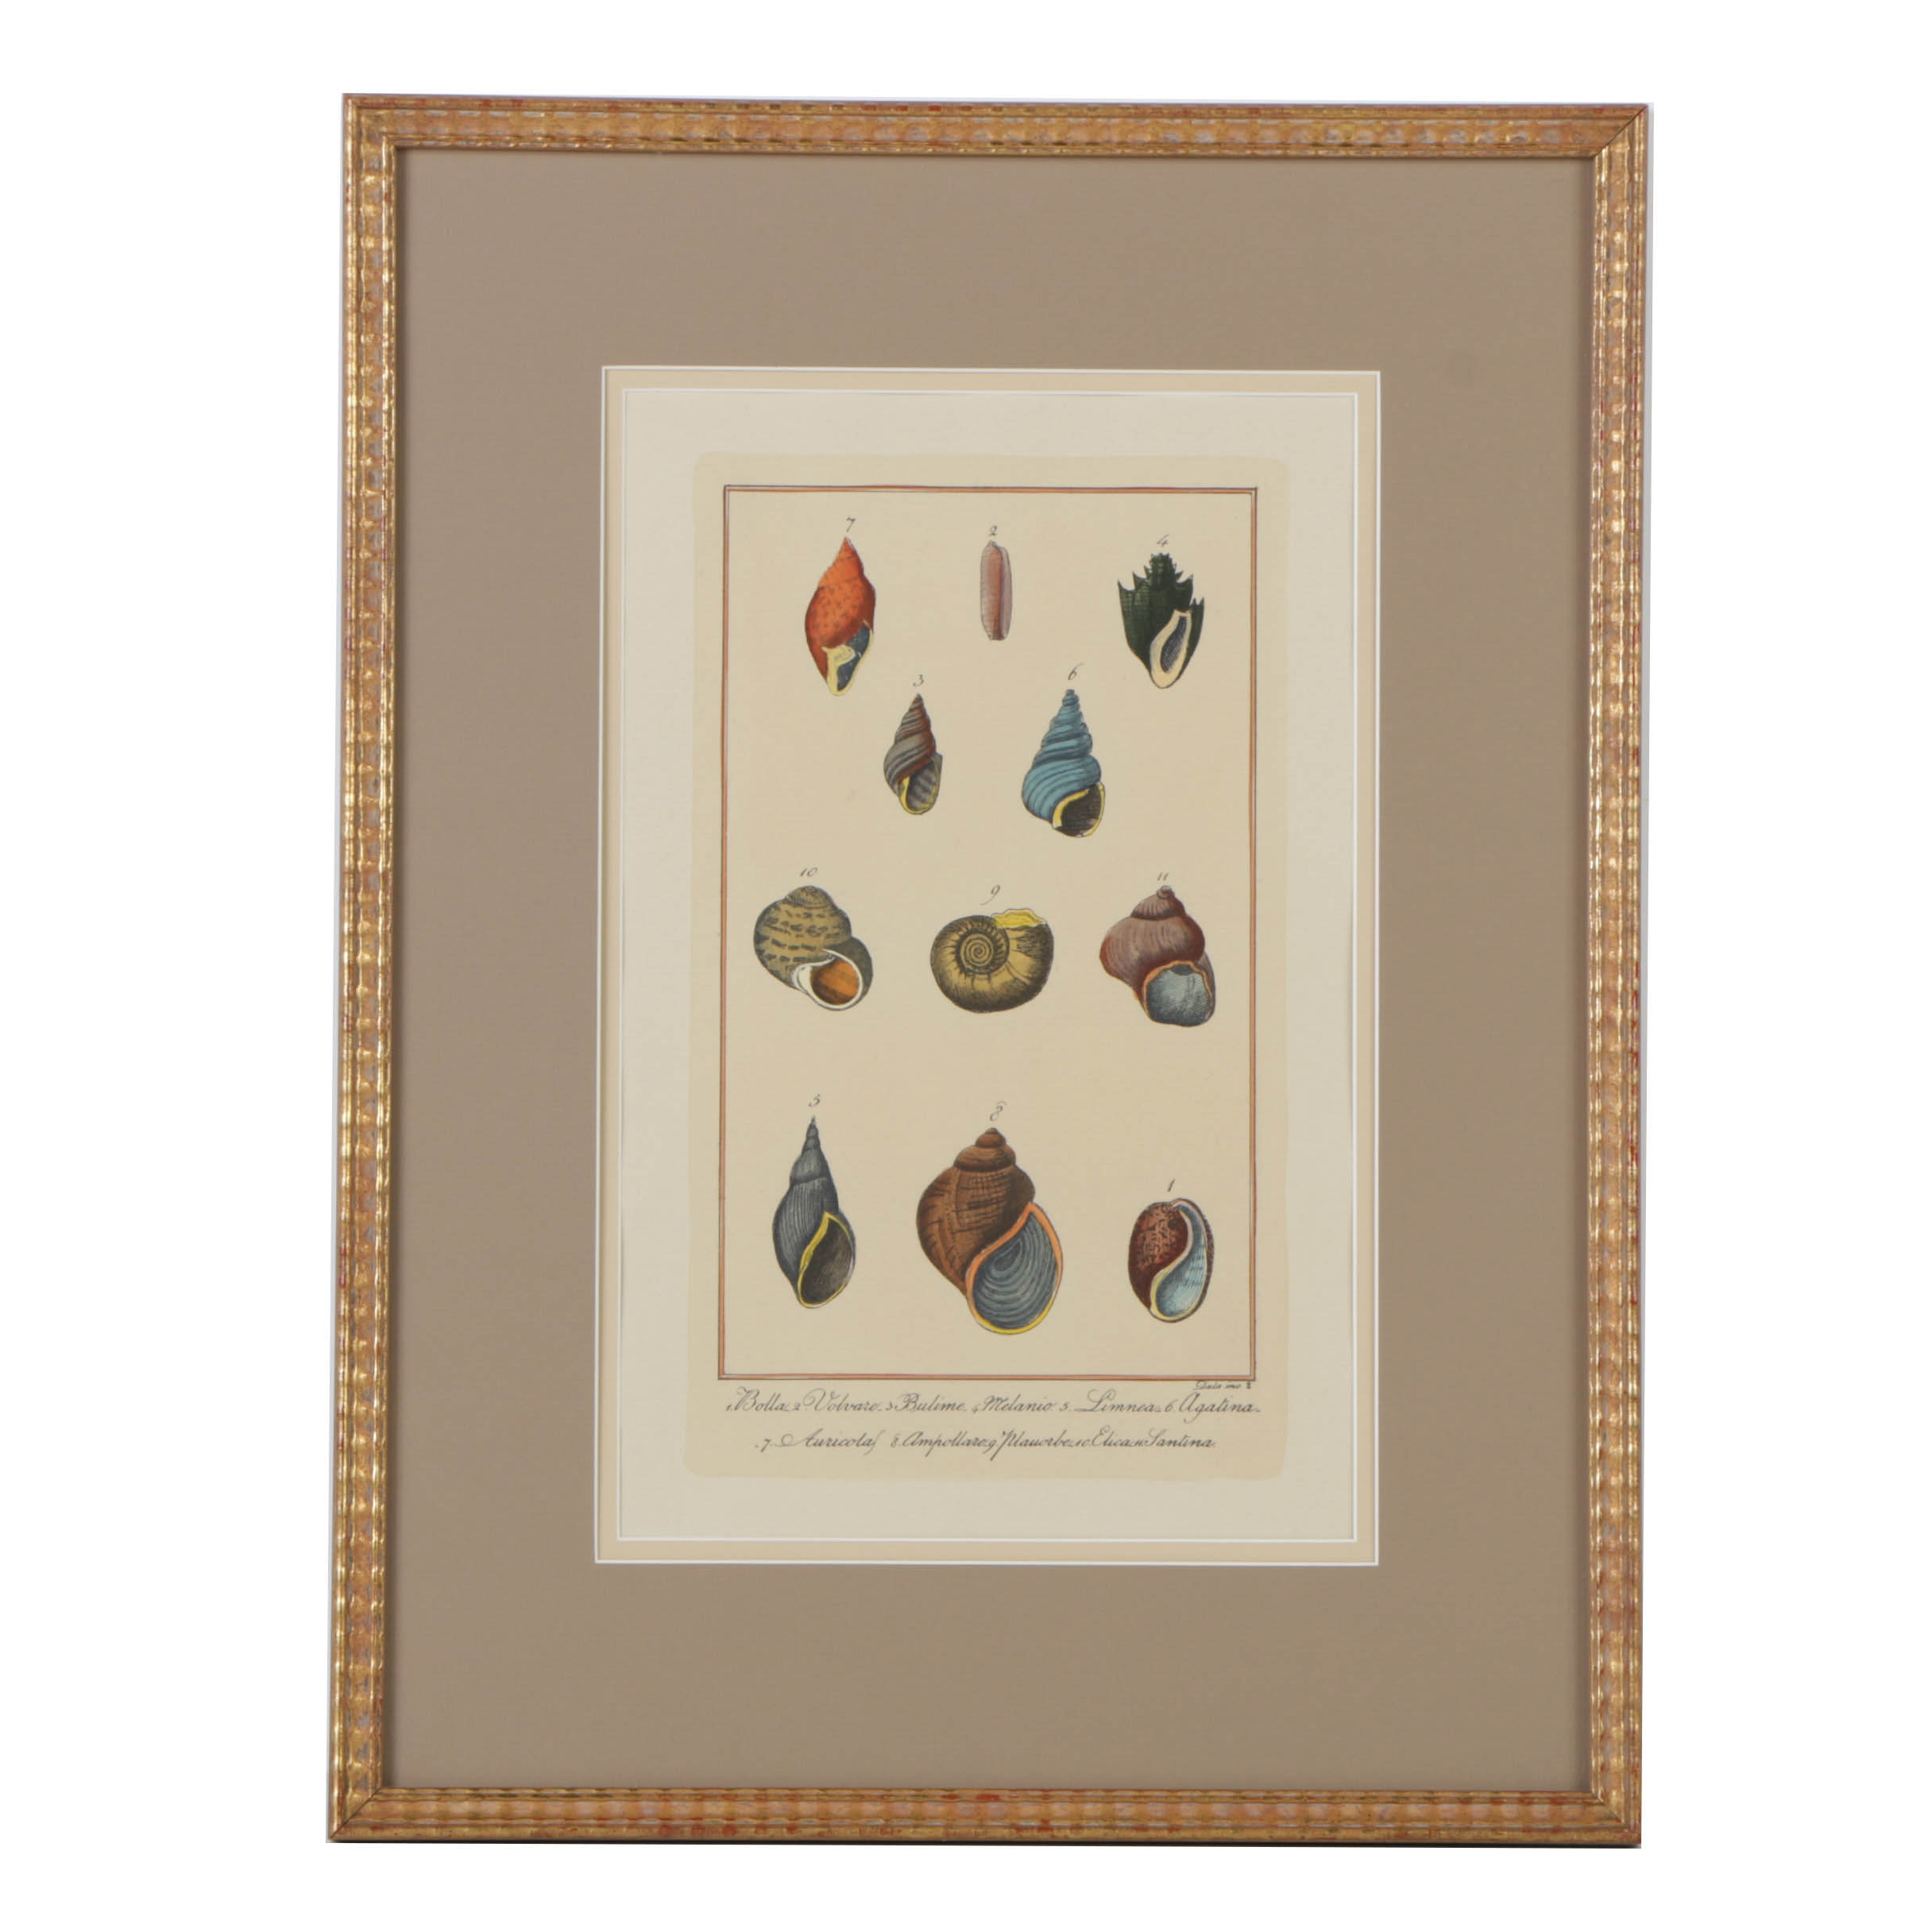 Hand Colored Engraving on Paper of Shells